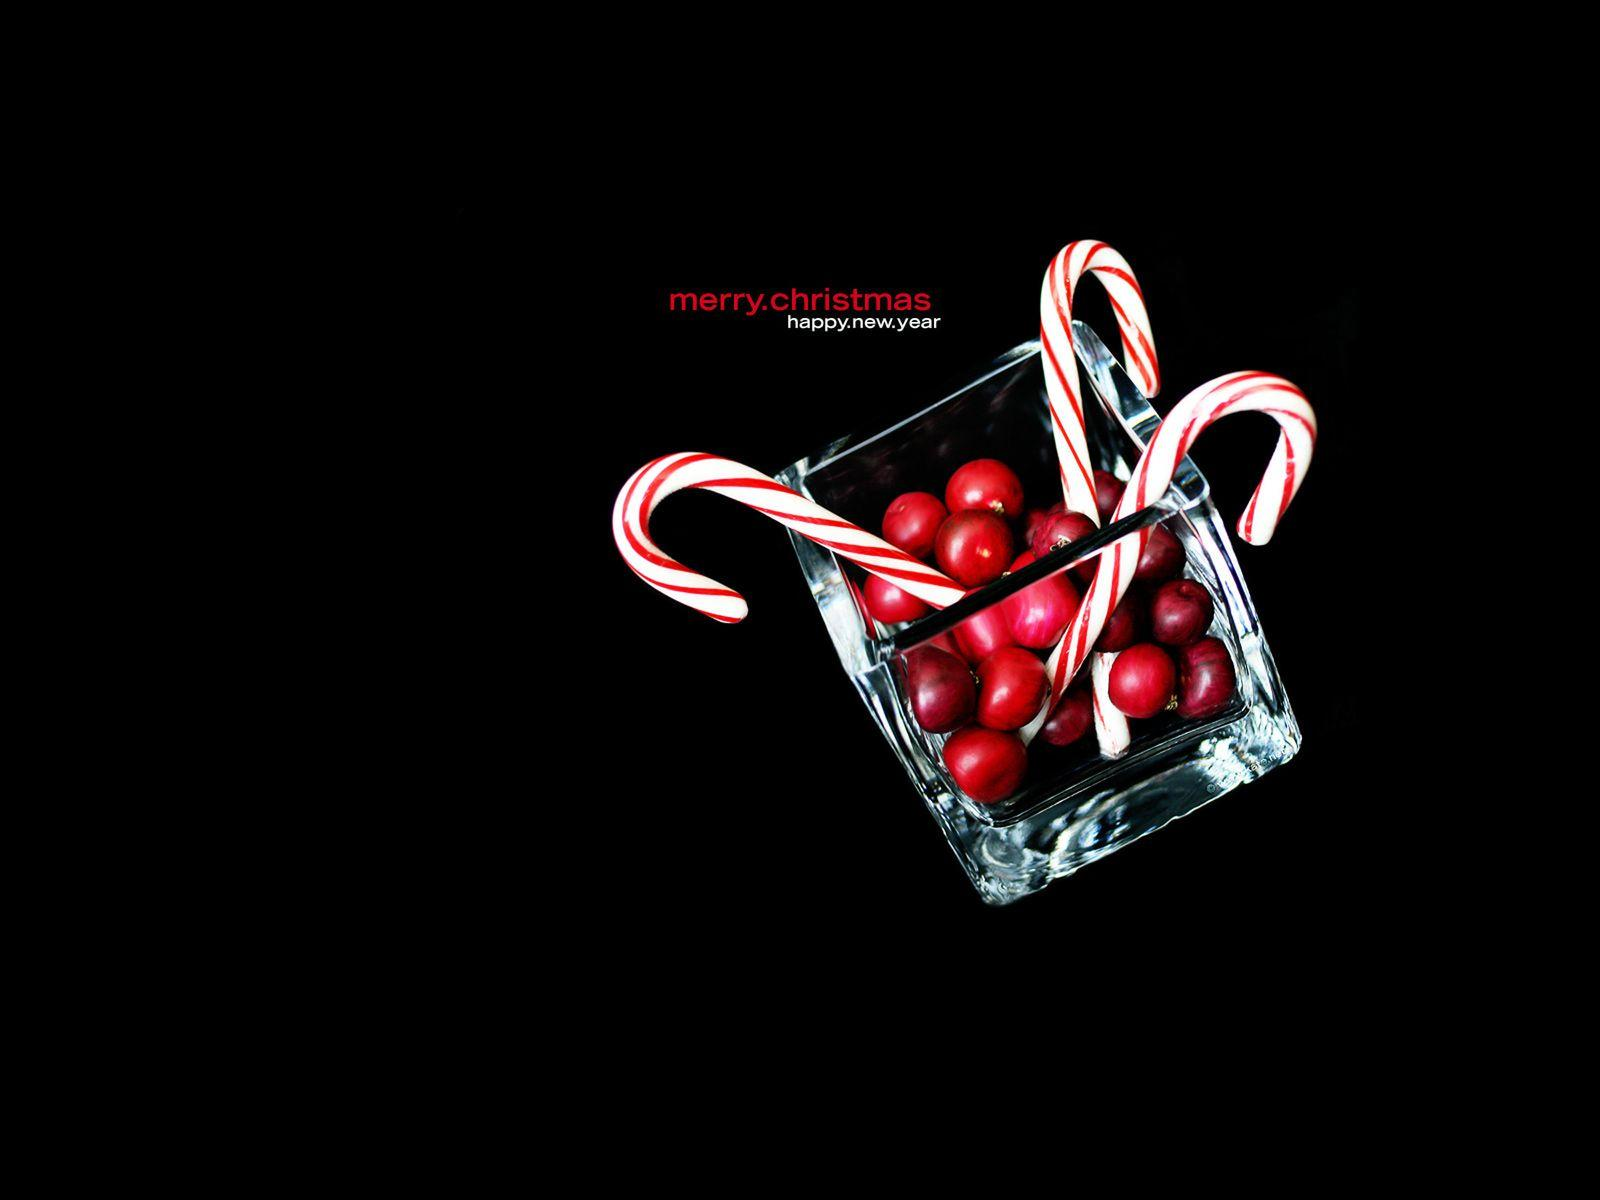 Free Christmas Wallpapers: Christmas Candy Cane Wallpapers